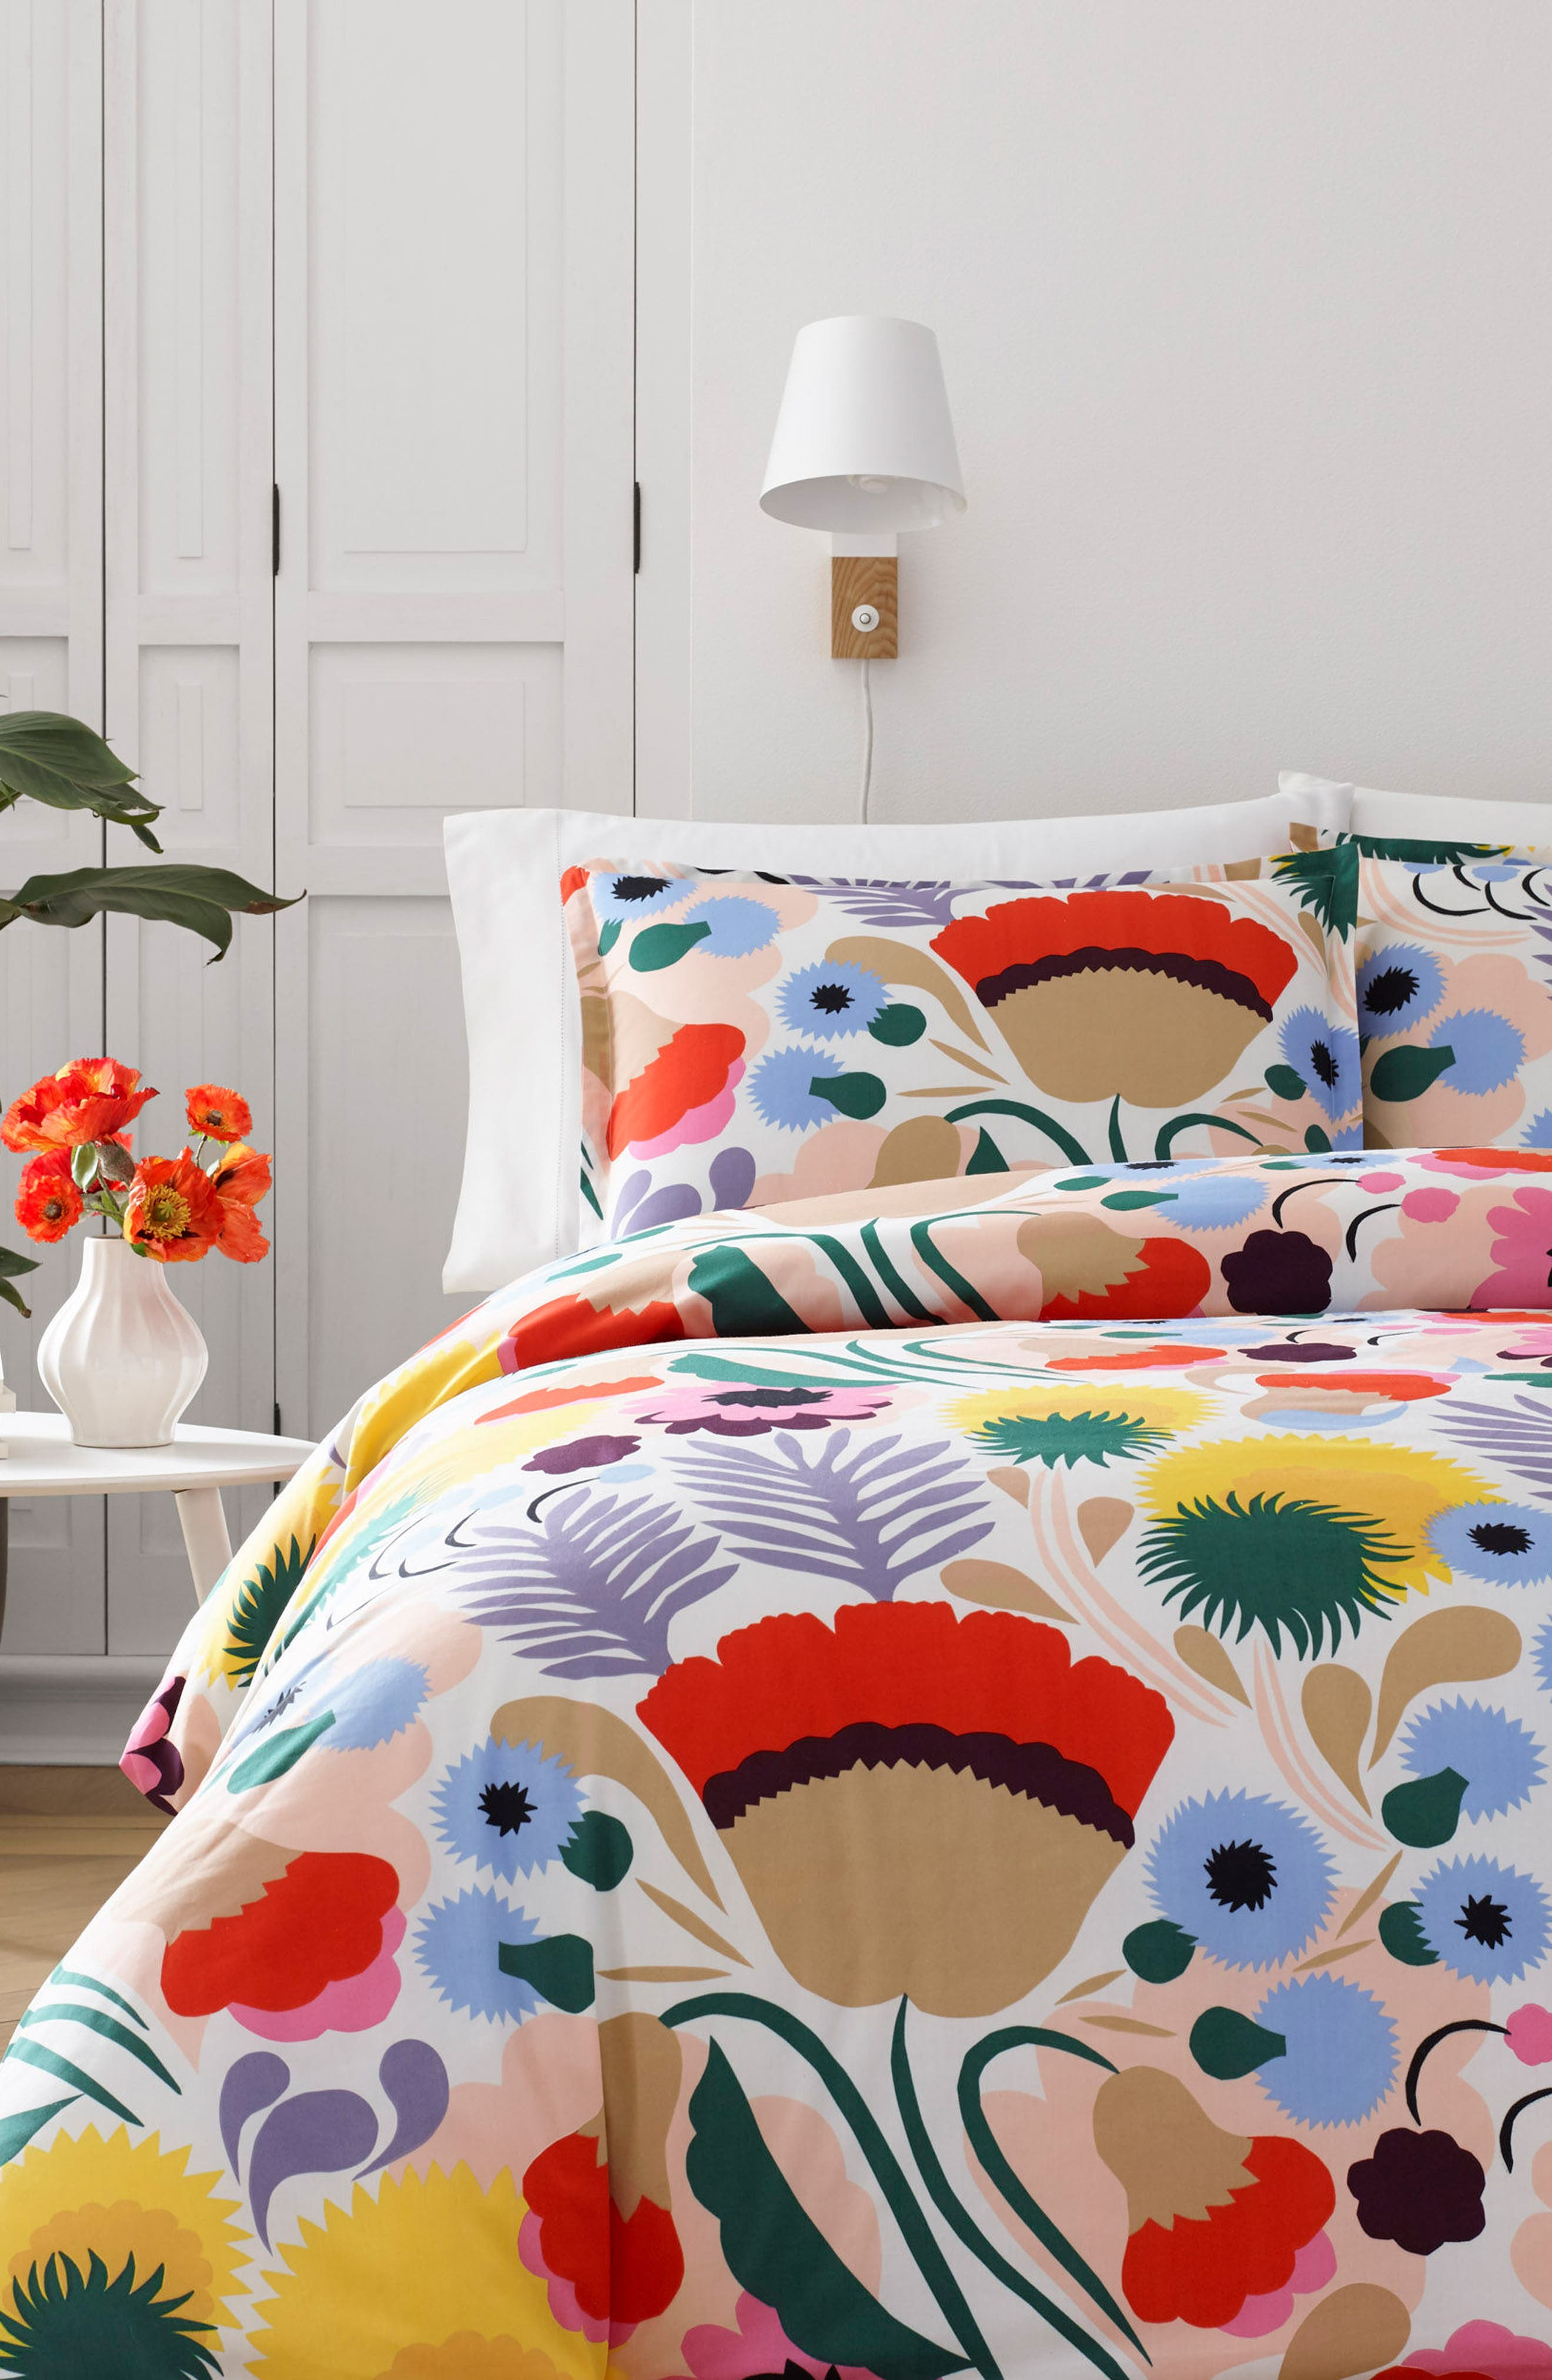 Ojakellukka Duvet Cover & Sham Set,                             Main thumbnail 1, color,                             BLUE/ MULTI